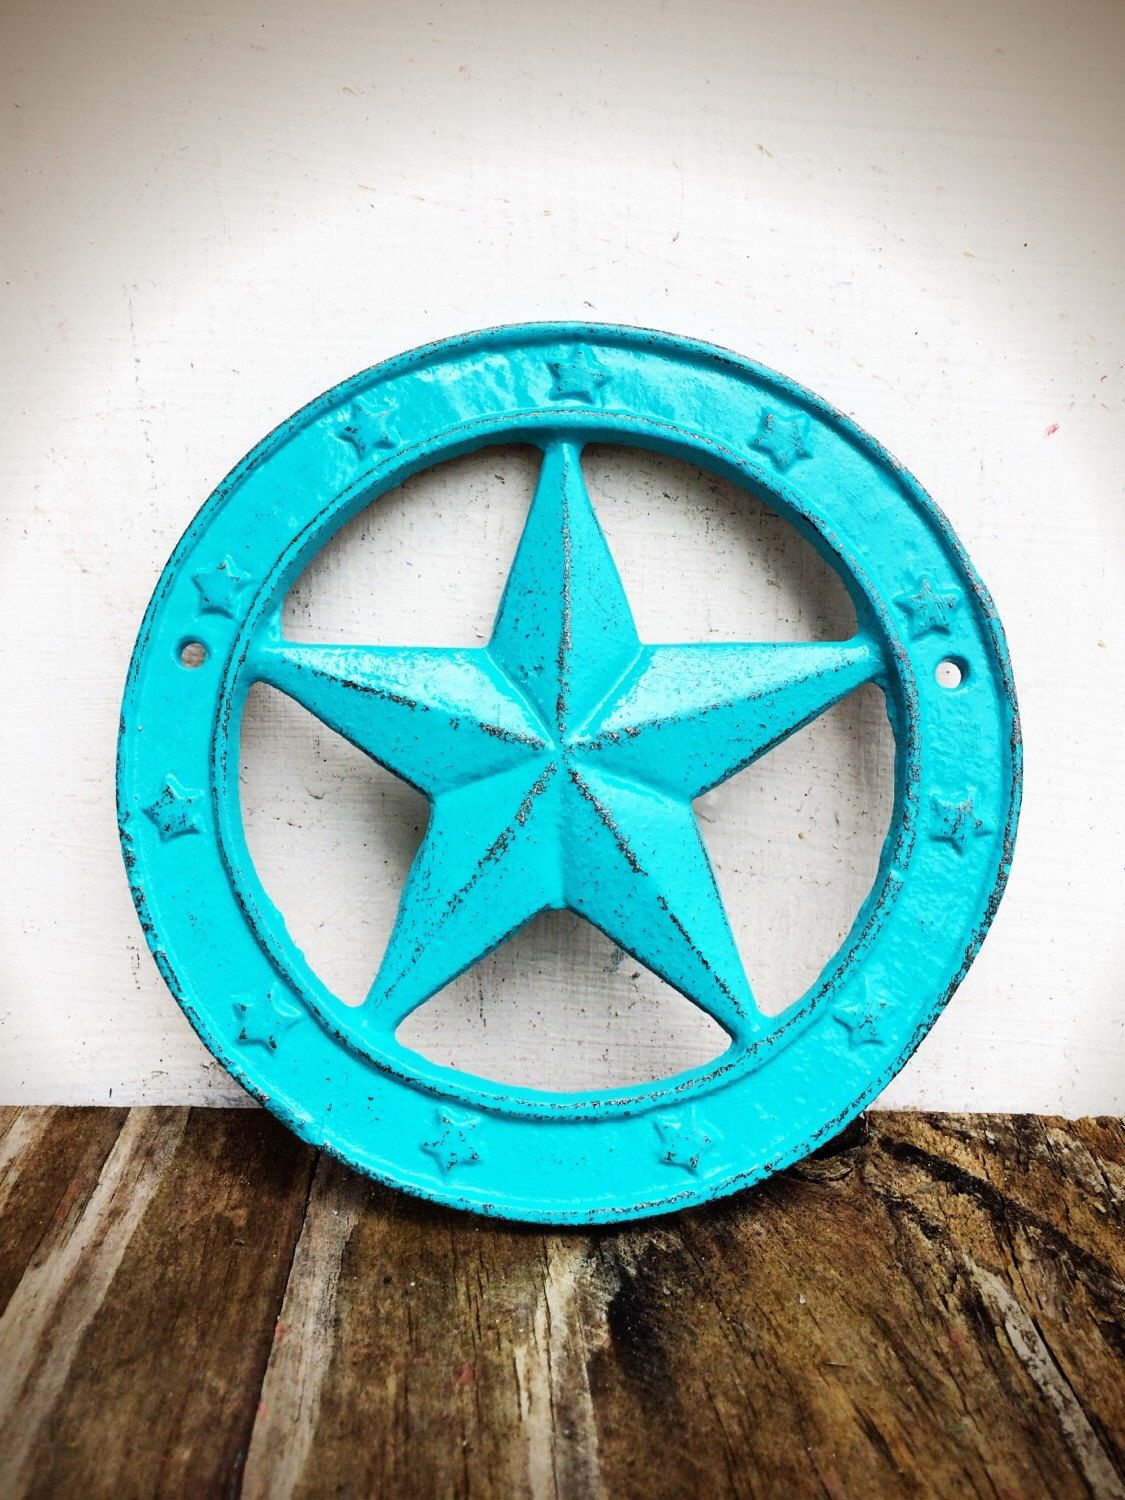 Bold Western Star Wall Plaque Shabby Chic Aqua Turquoise Blue Texas Rustic Cowboy Country Art Home Decor By Boldhouse On Etsy